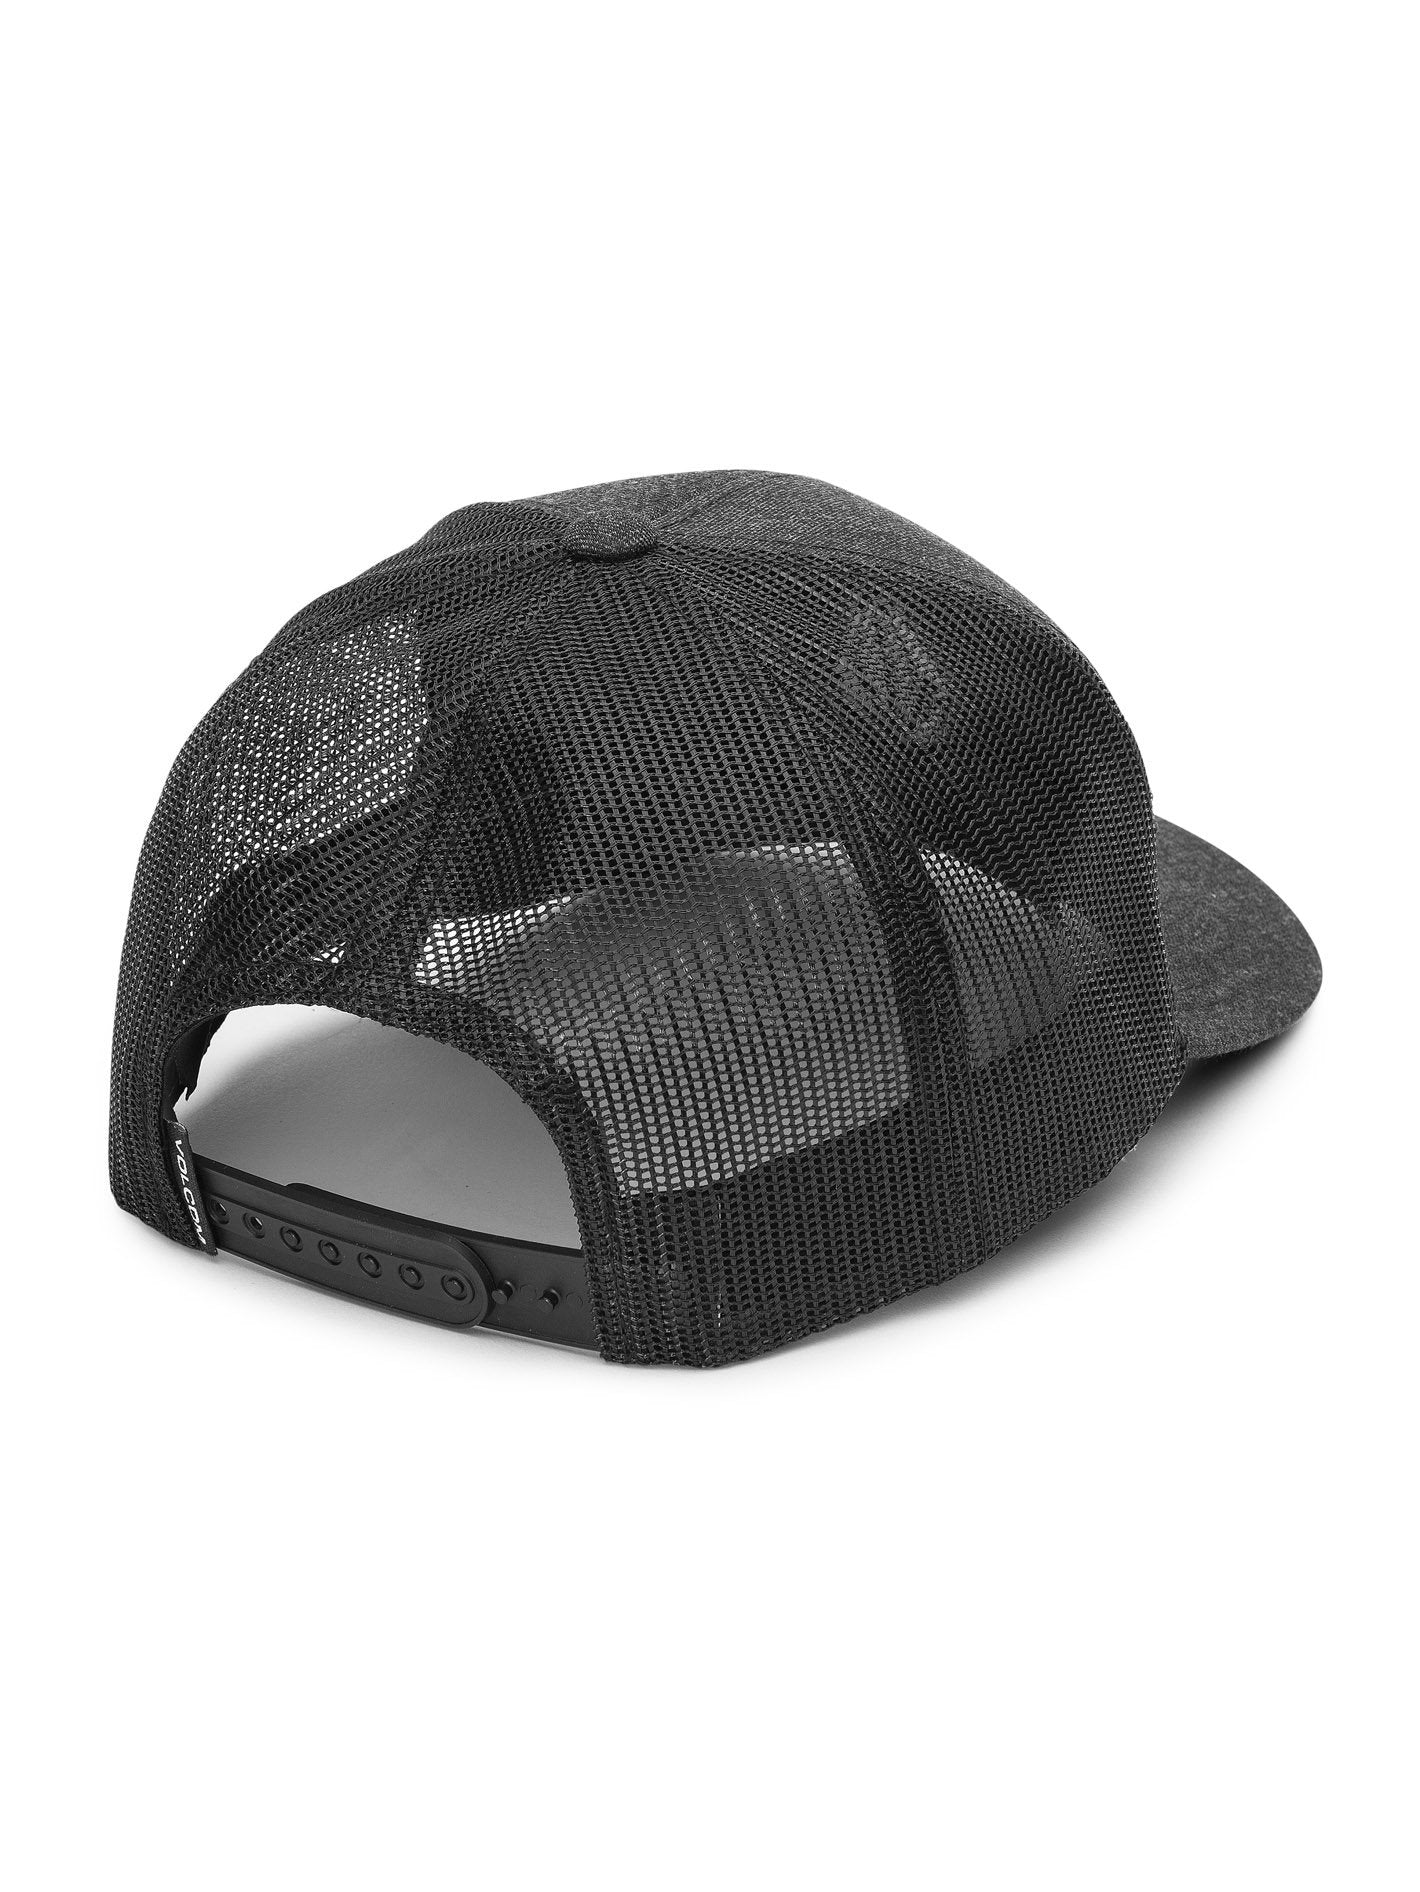 ee8f672714e Full Stone Cheese Hat - Charcoal Heather